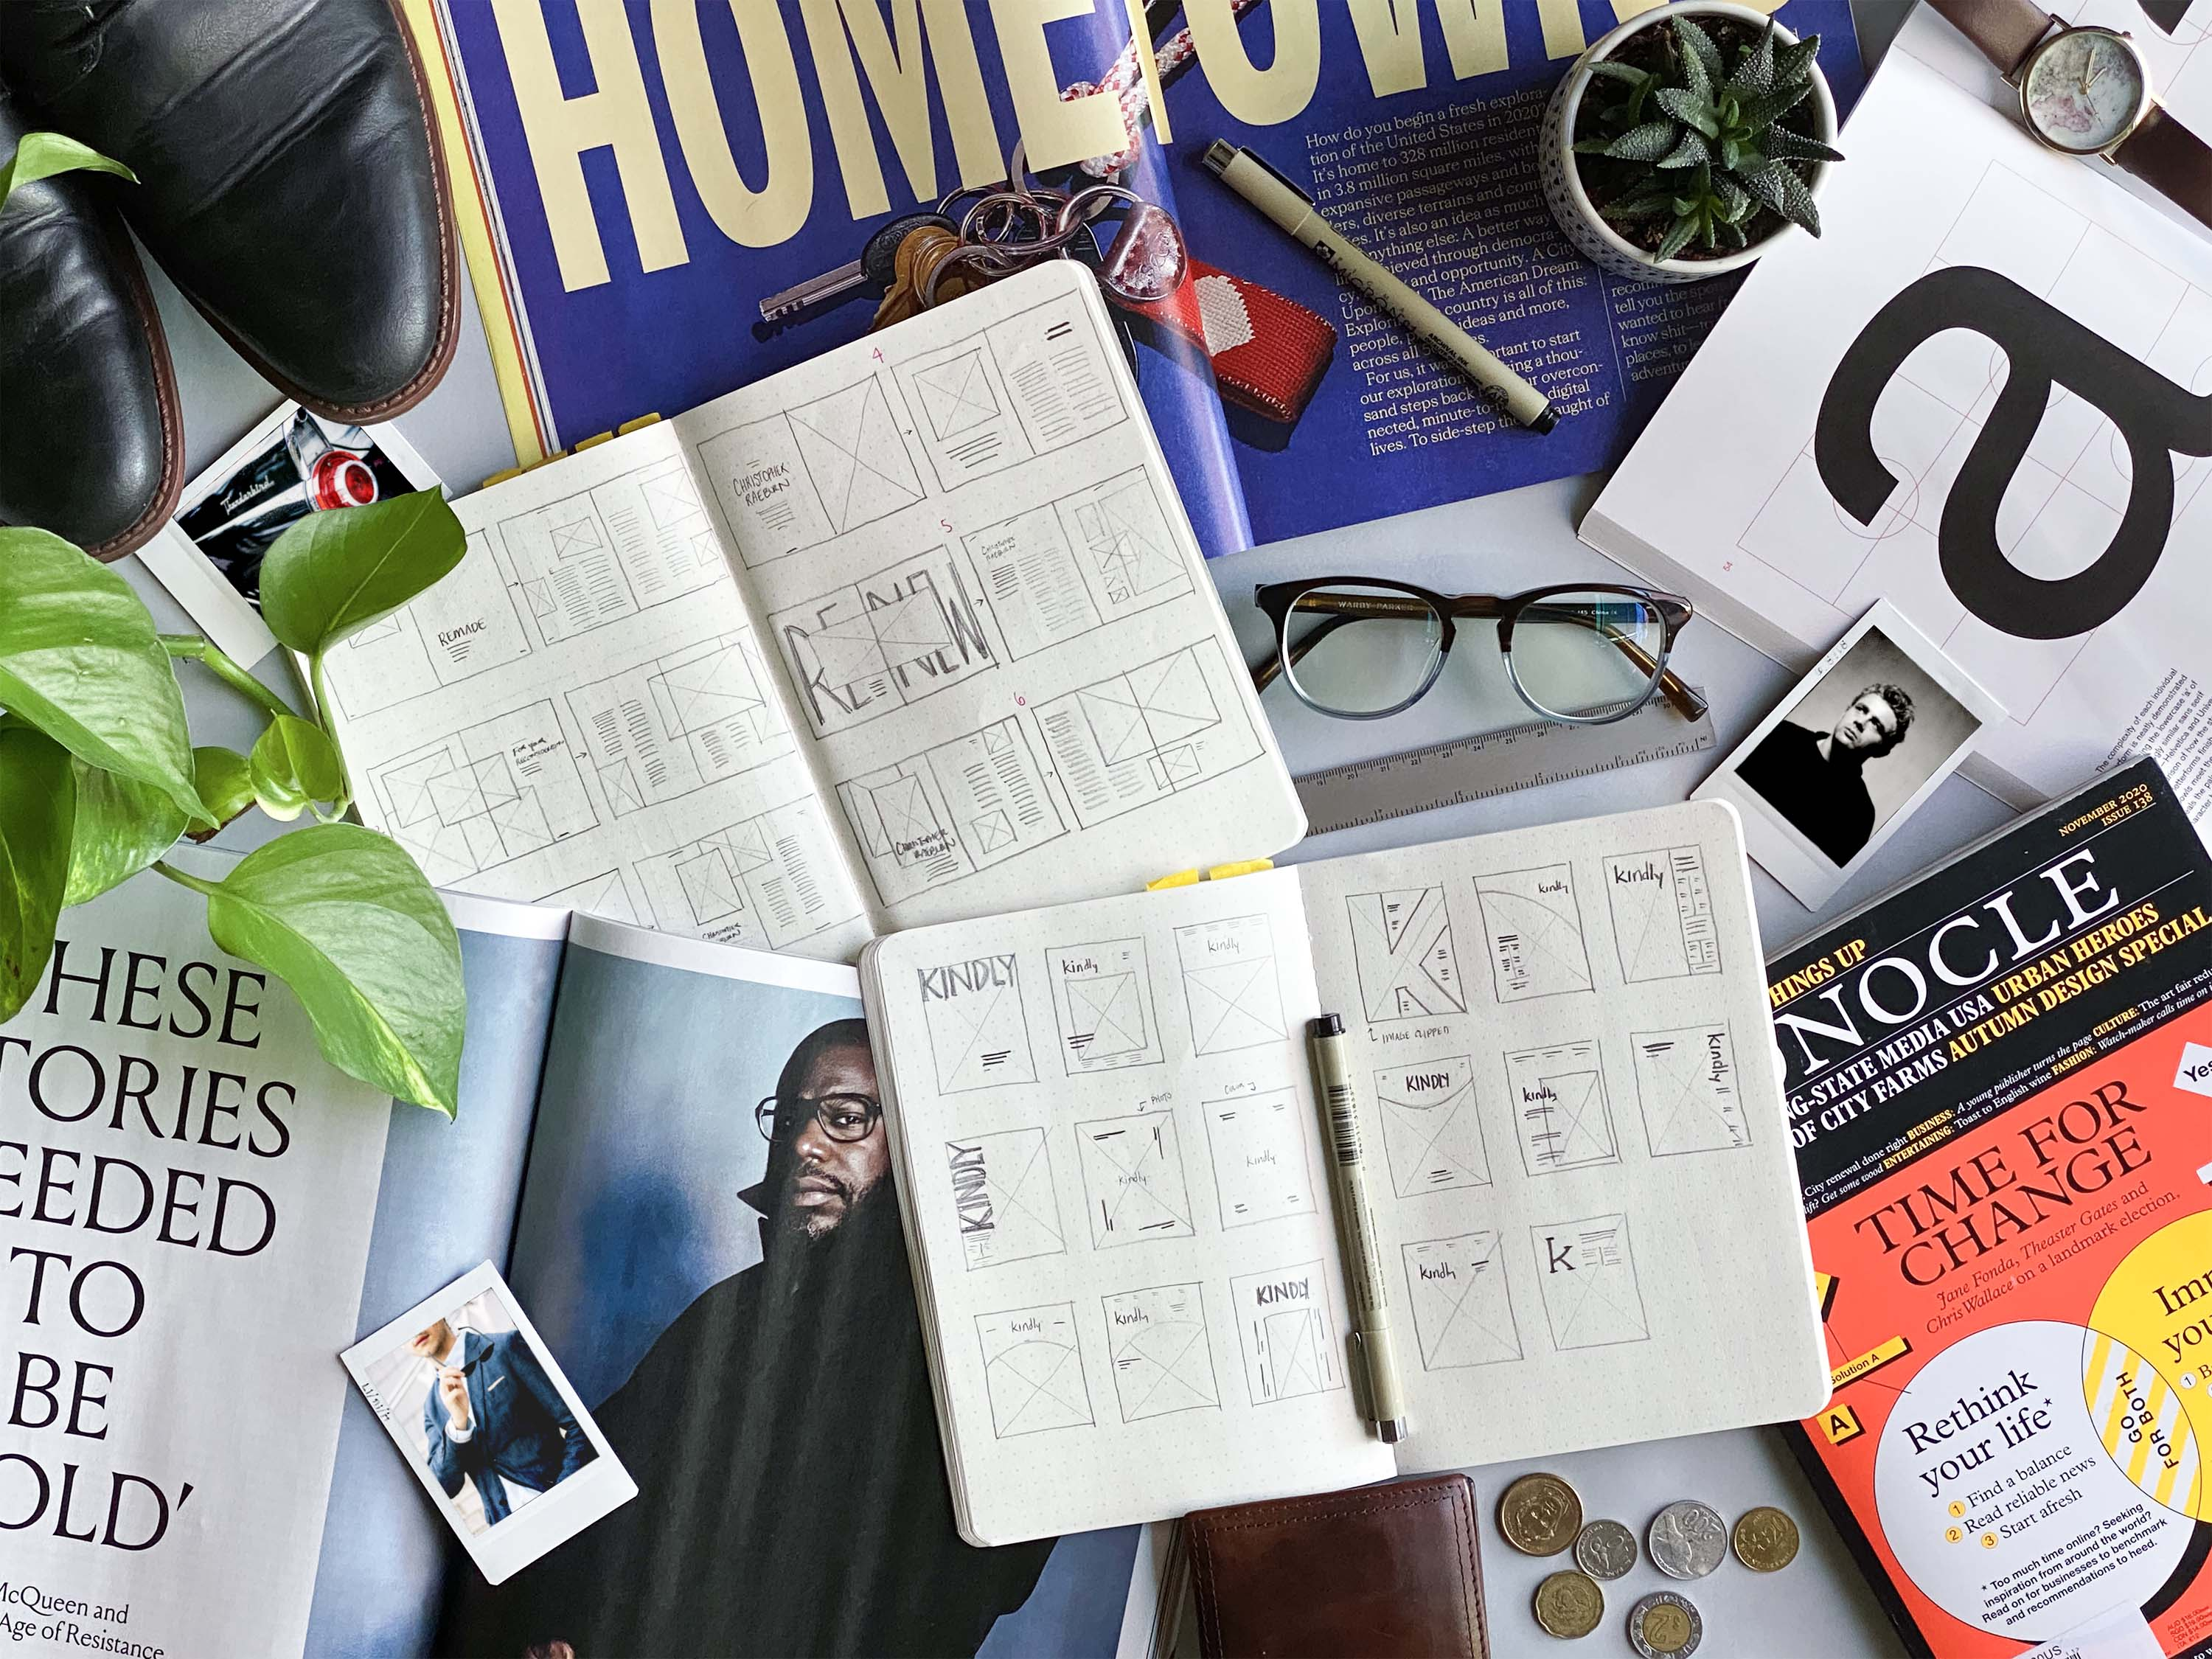 A desk covered in sketchbooks, magazines, and inspiration photos, showing the design process Kindly Magazine.